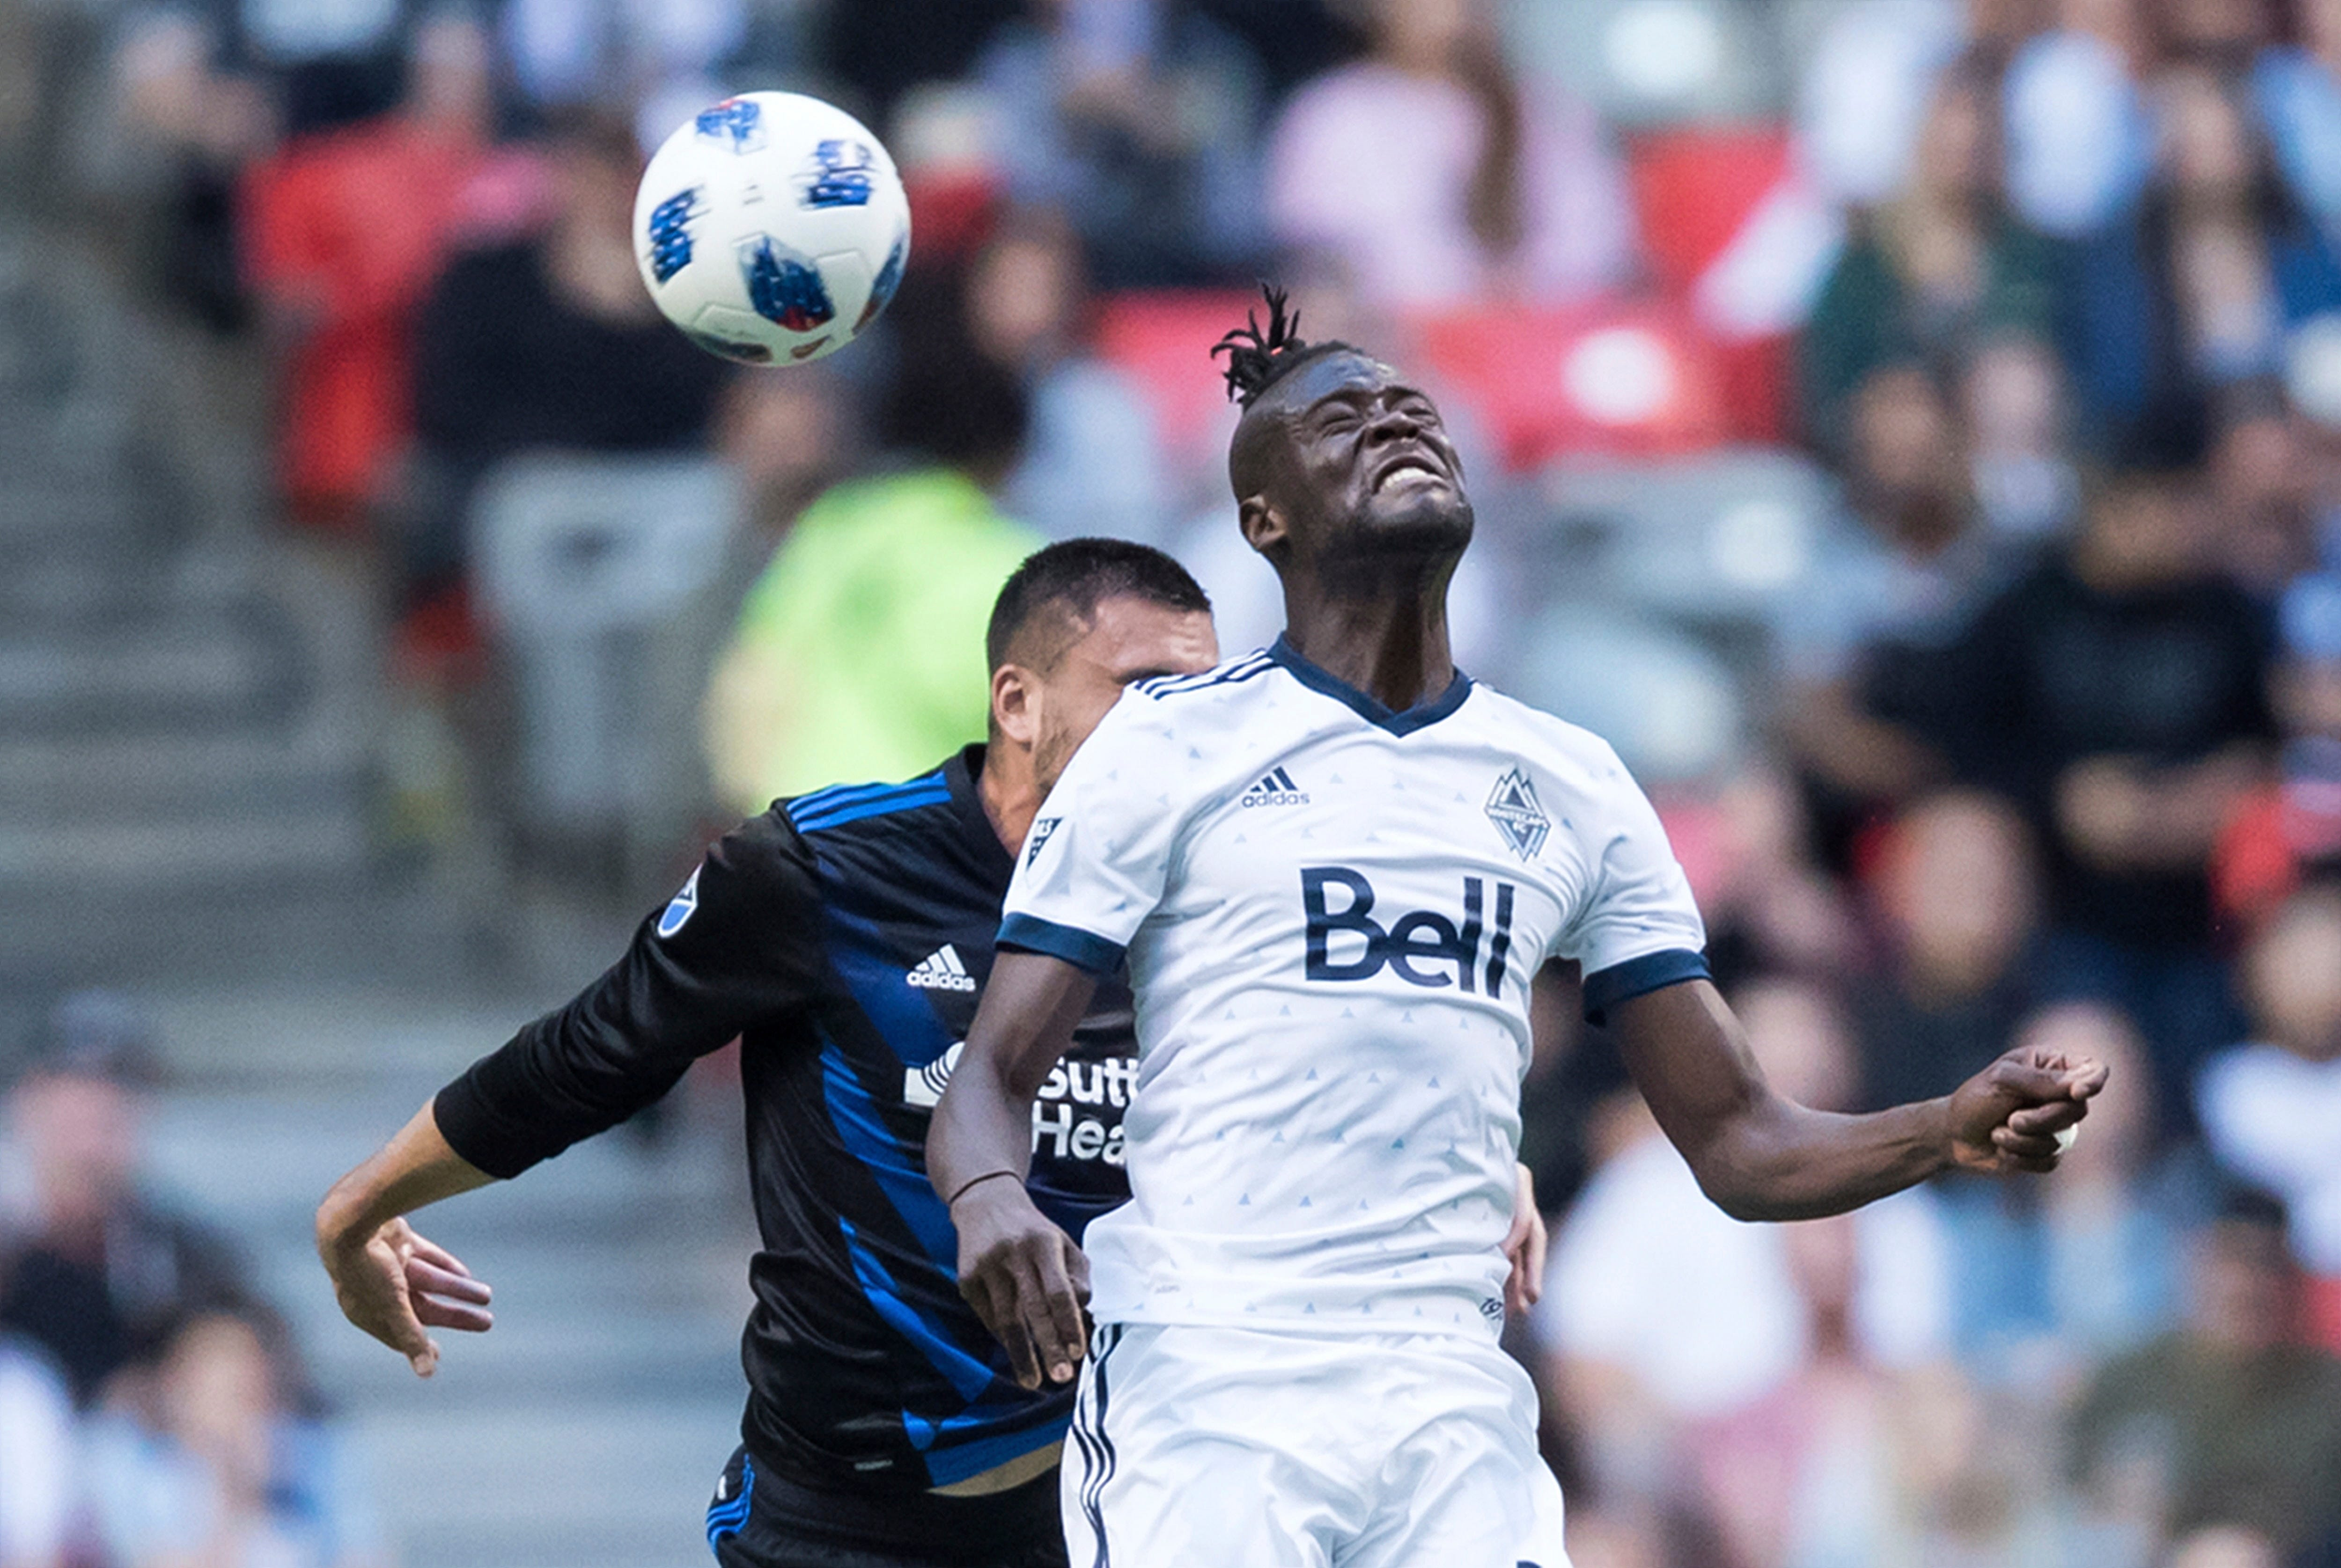 Reyna helps Whitecaps to 2-2 draw with Earthquakes